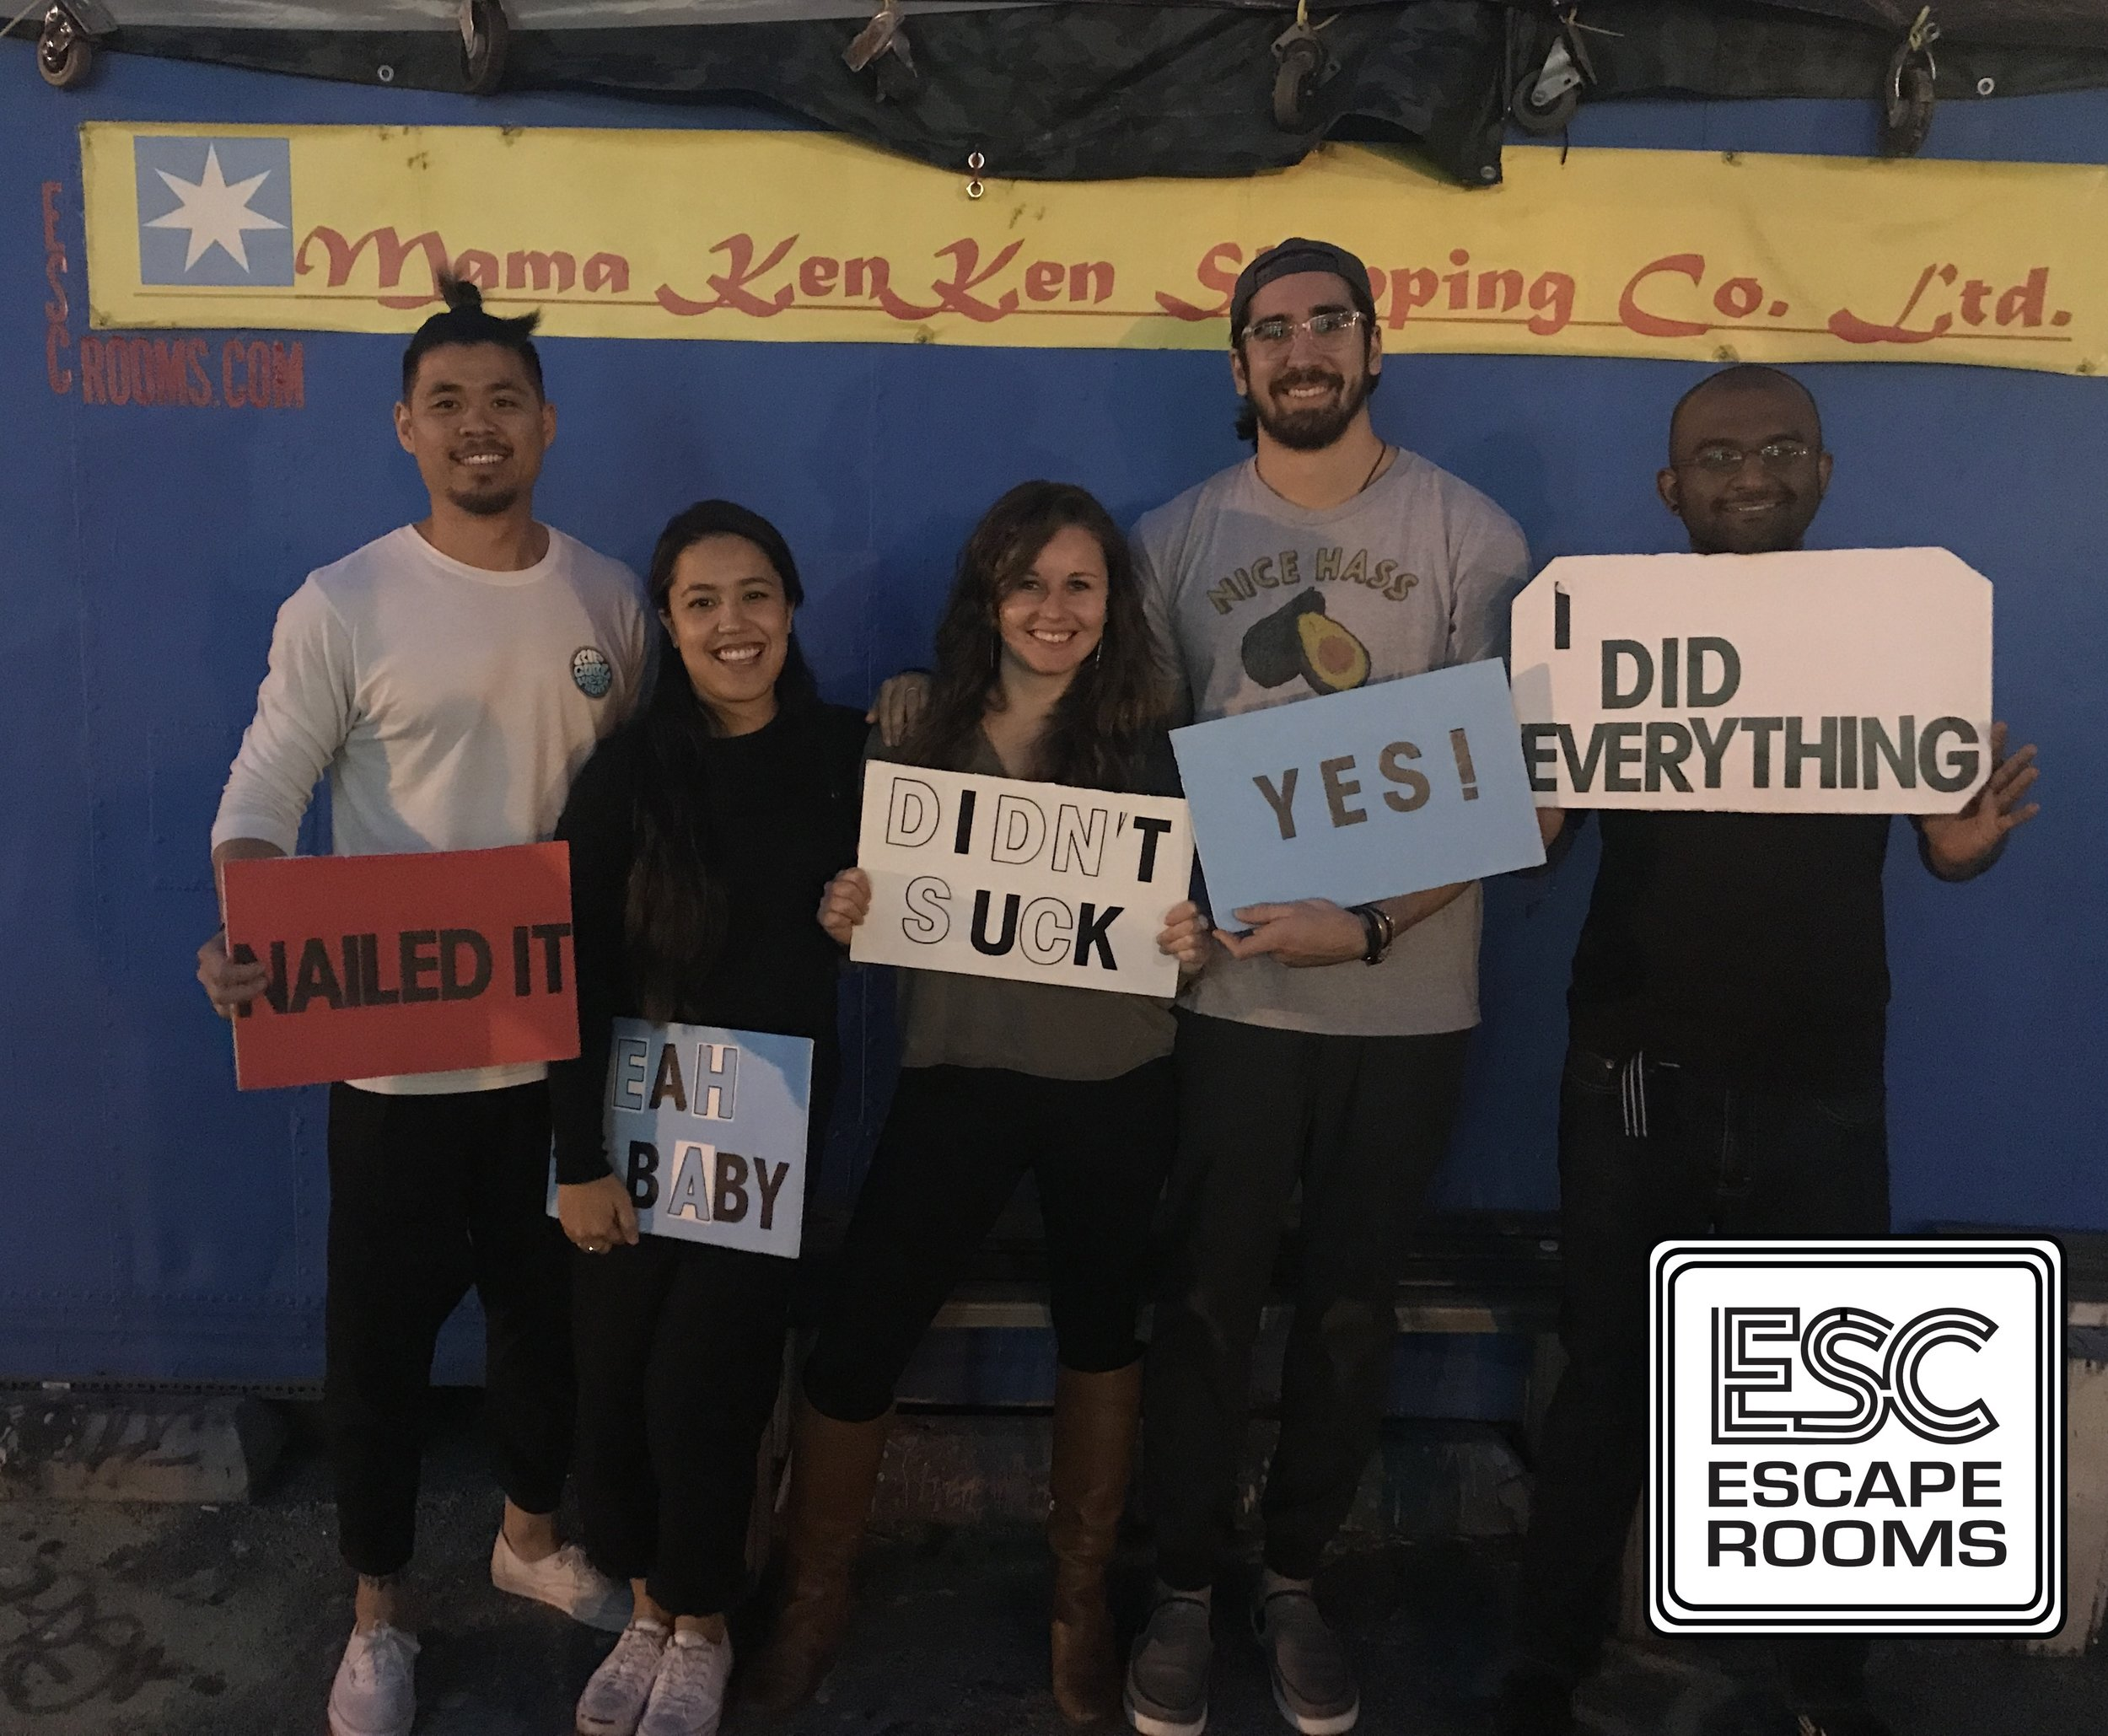 esc-escape-rooms-uhh-mazing.JPG